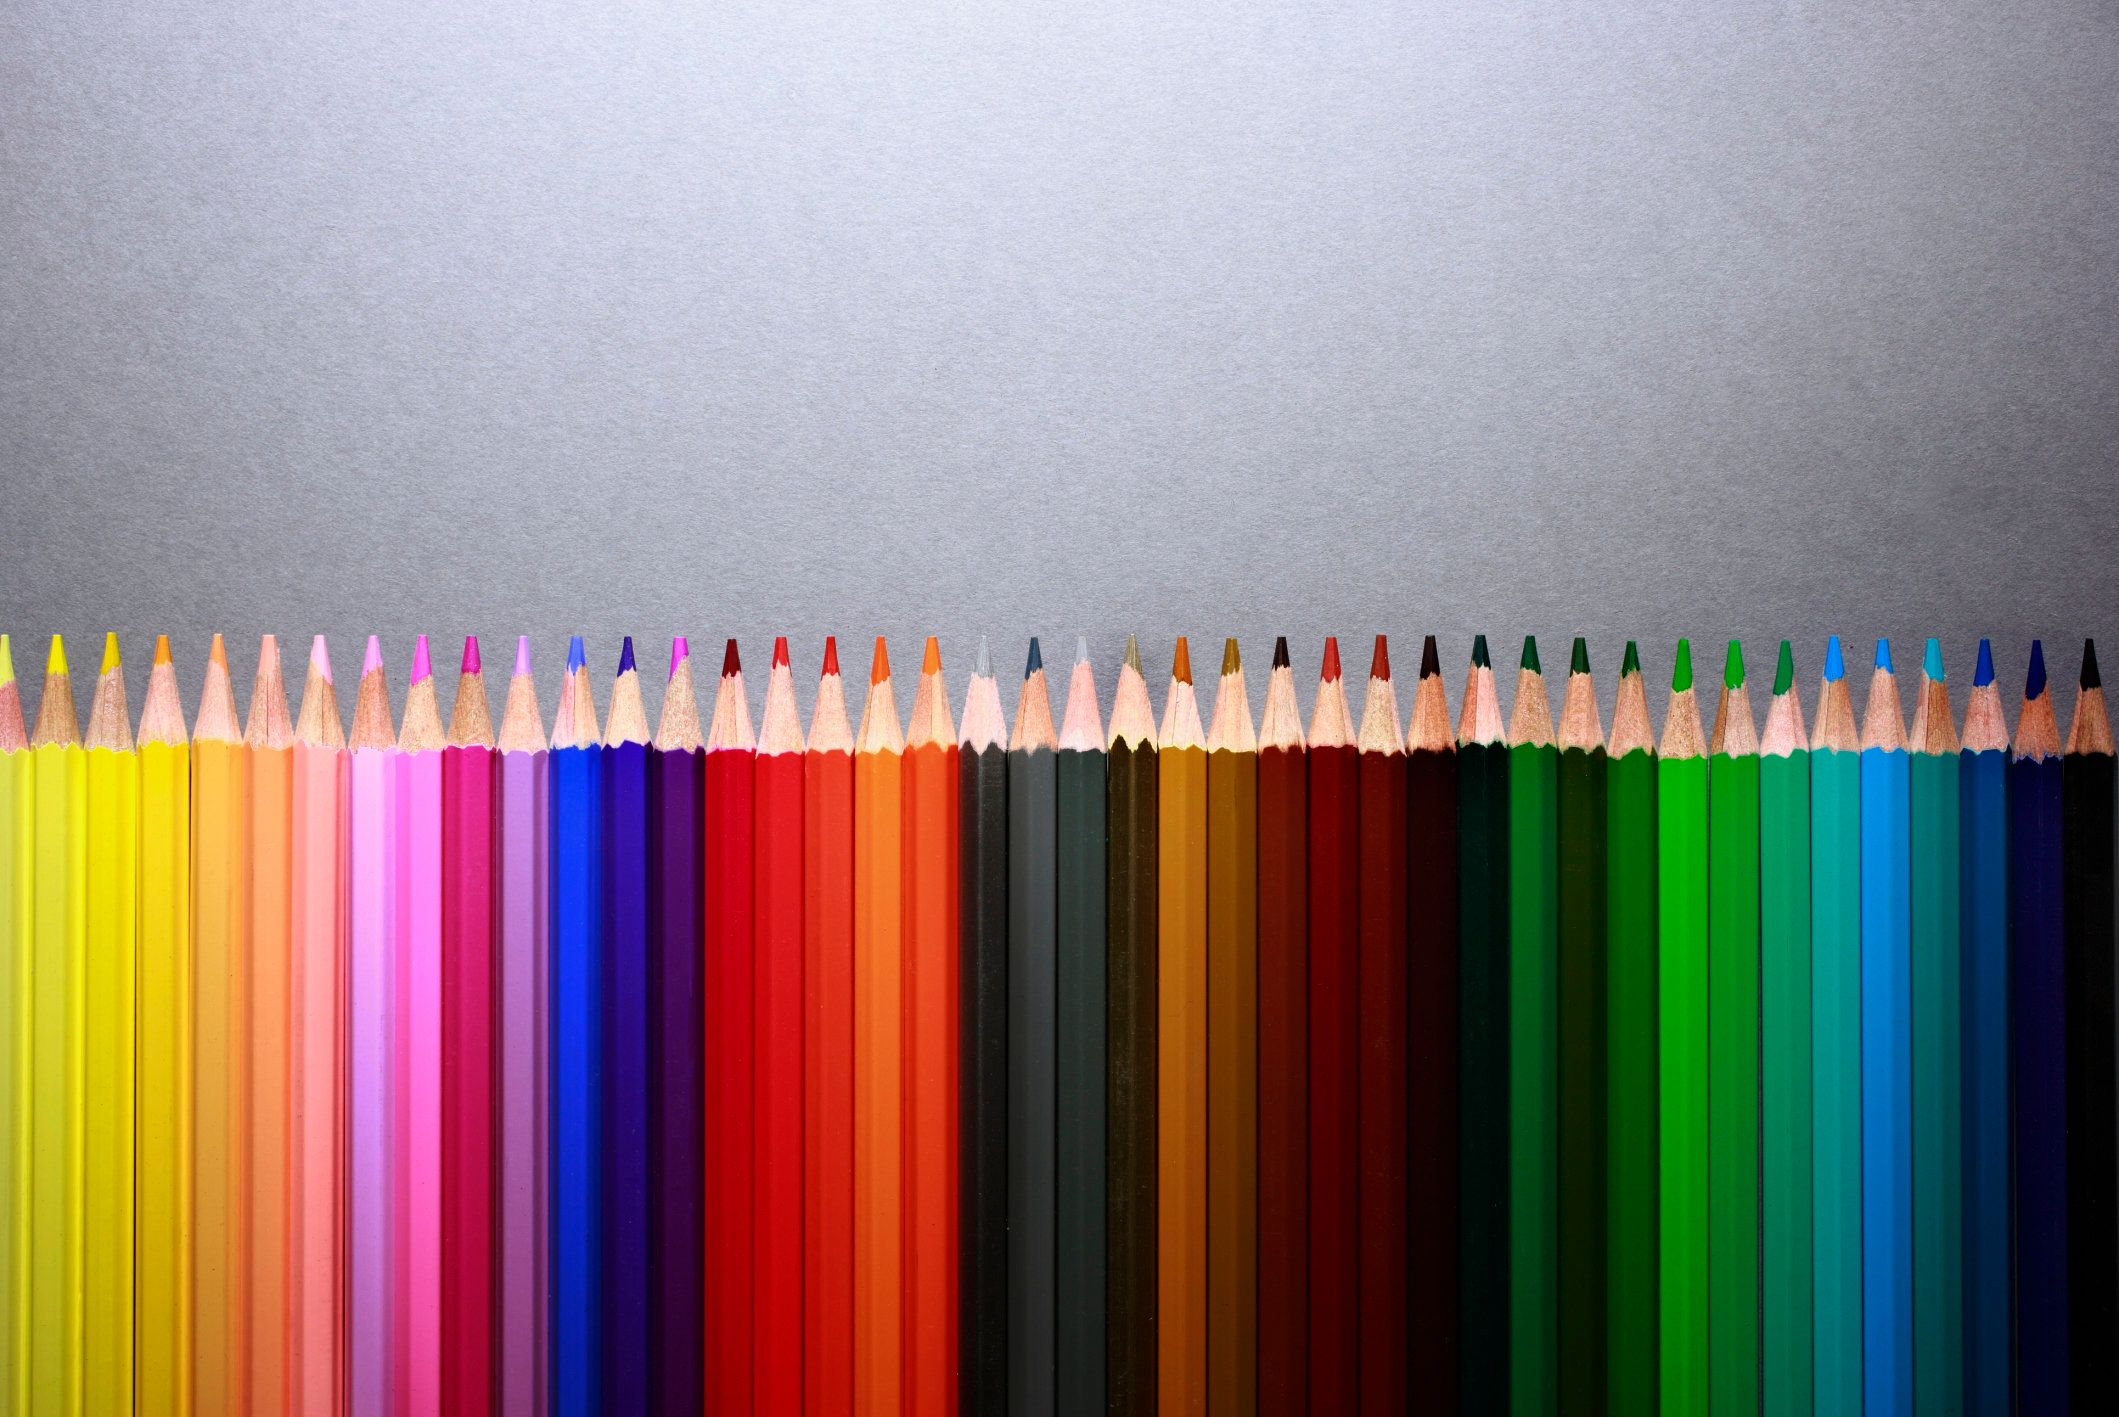 Images 37 Art Therapy Techniques For De-Stressing This Season | HuffPost 1 Relaxation